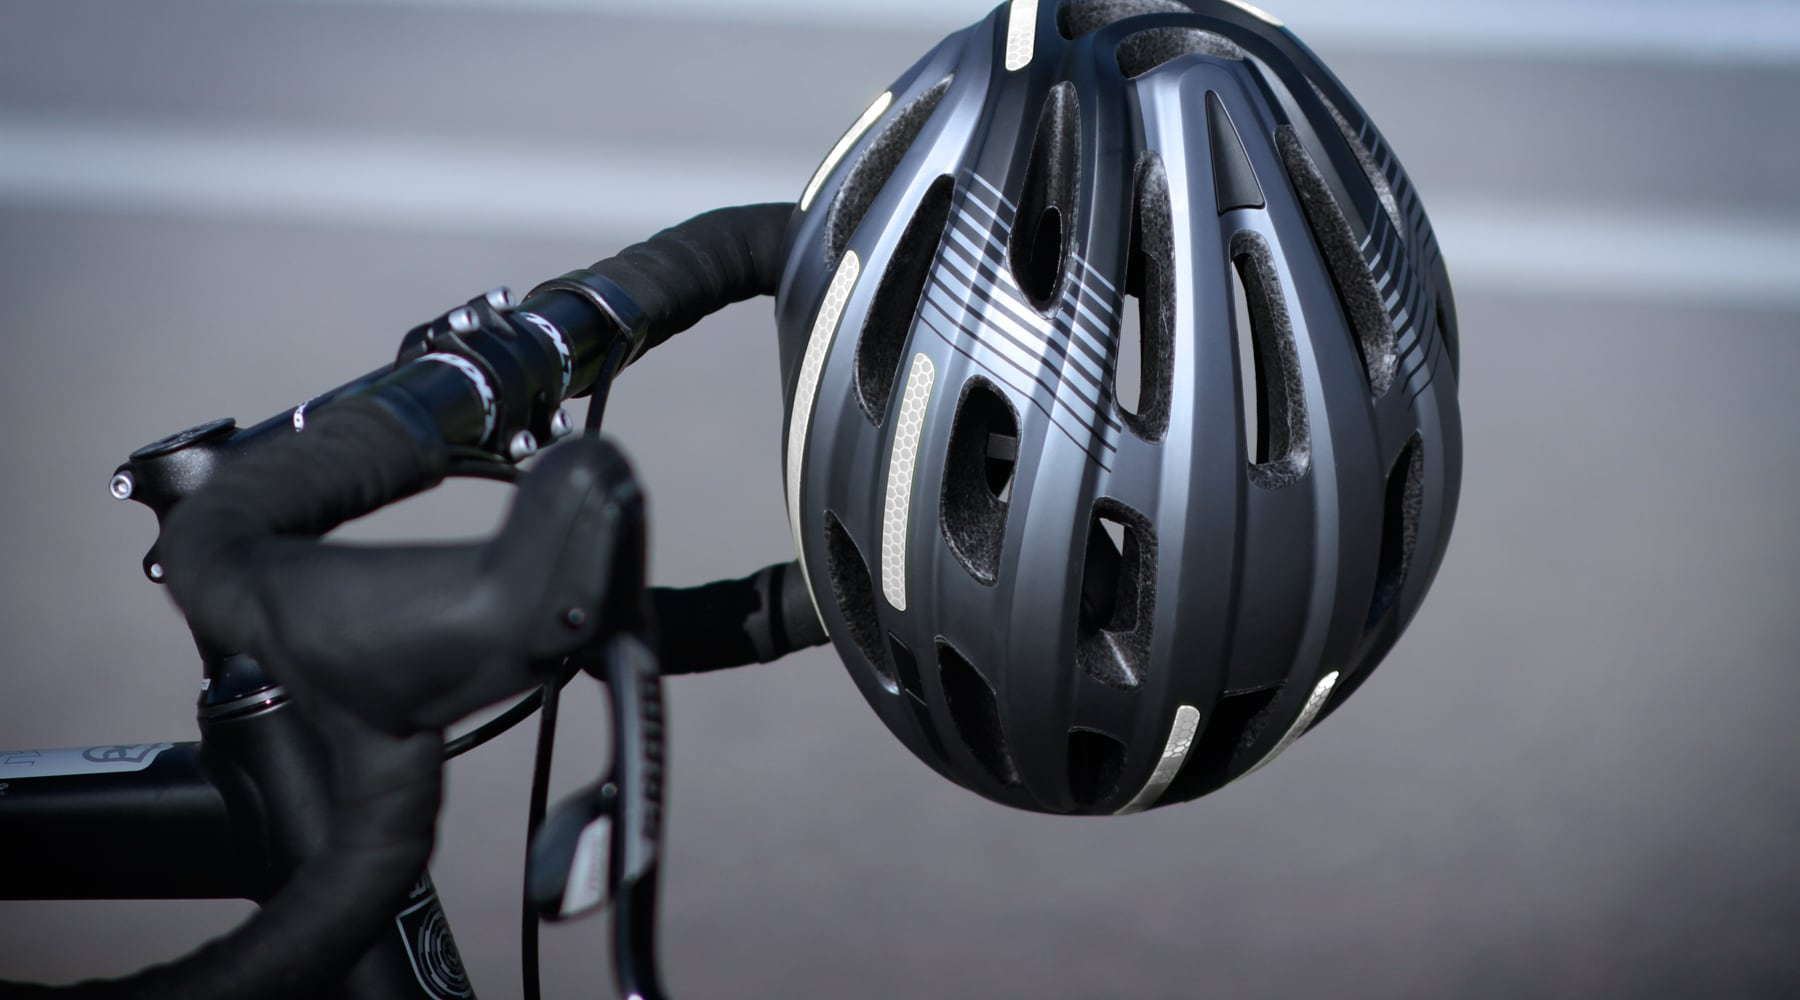 The best bicycle helmet looks like this!